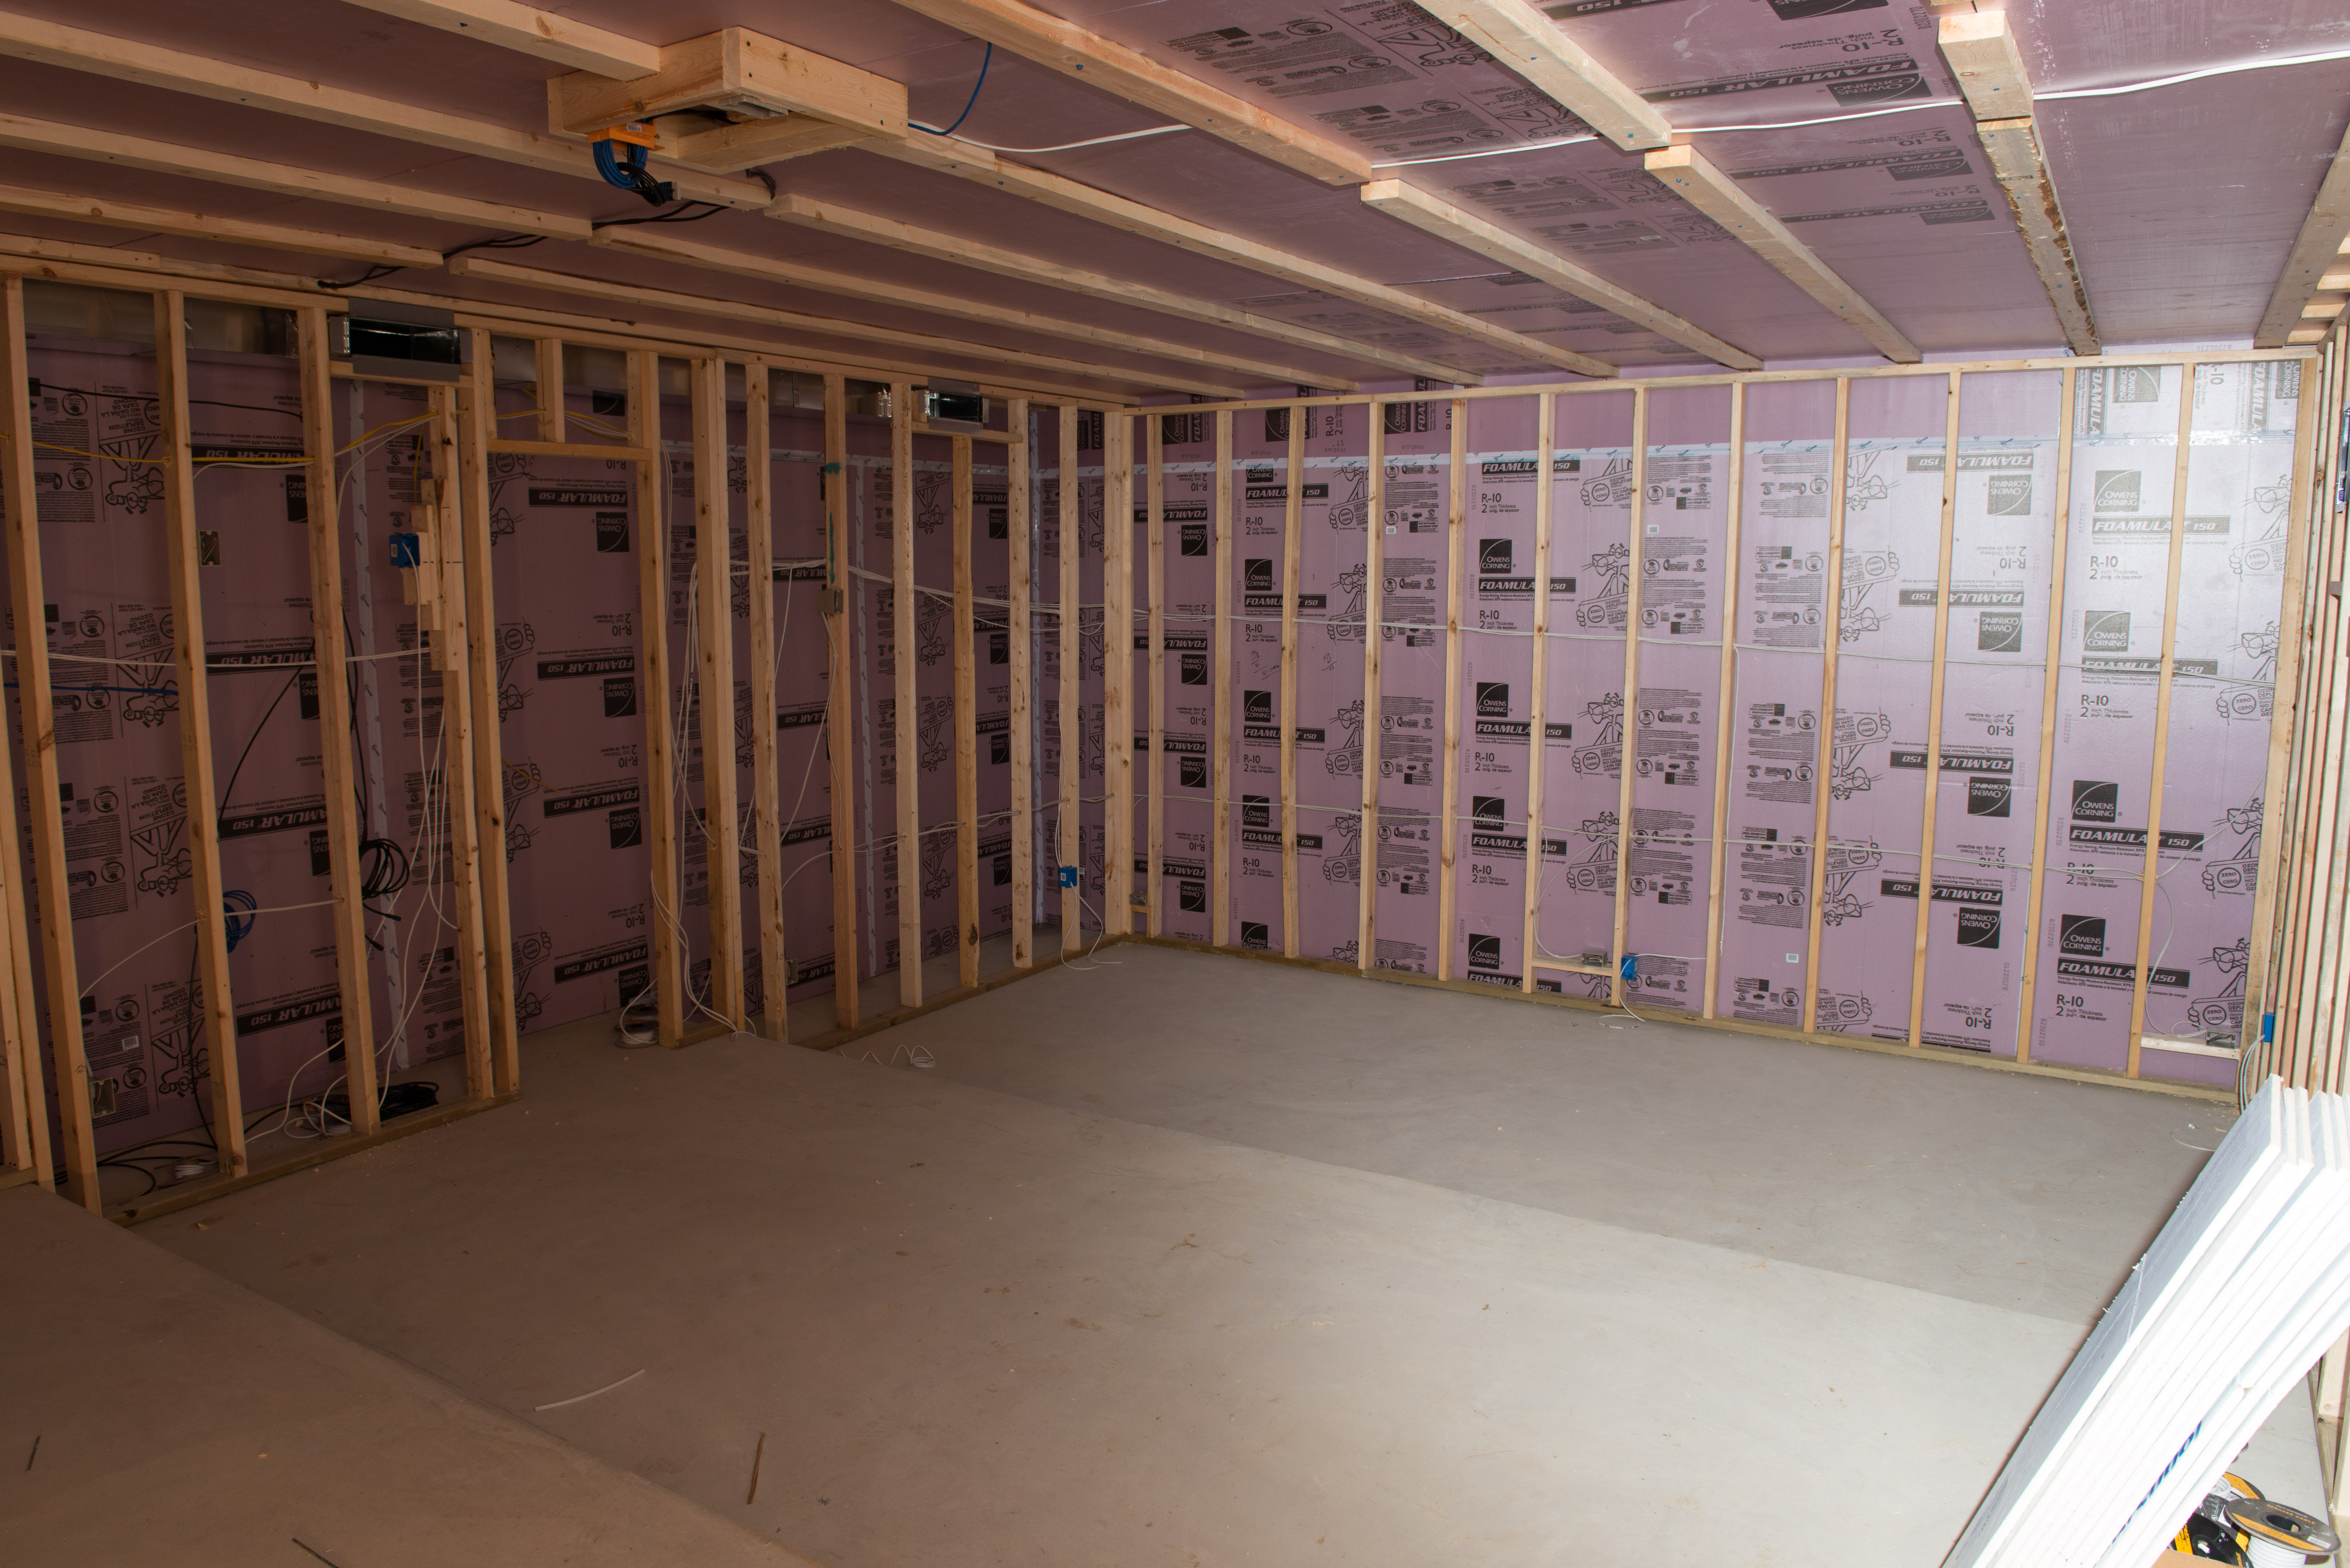 04-RoomConstruction.jpg